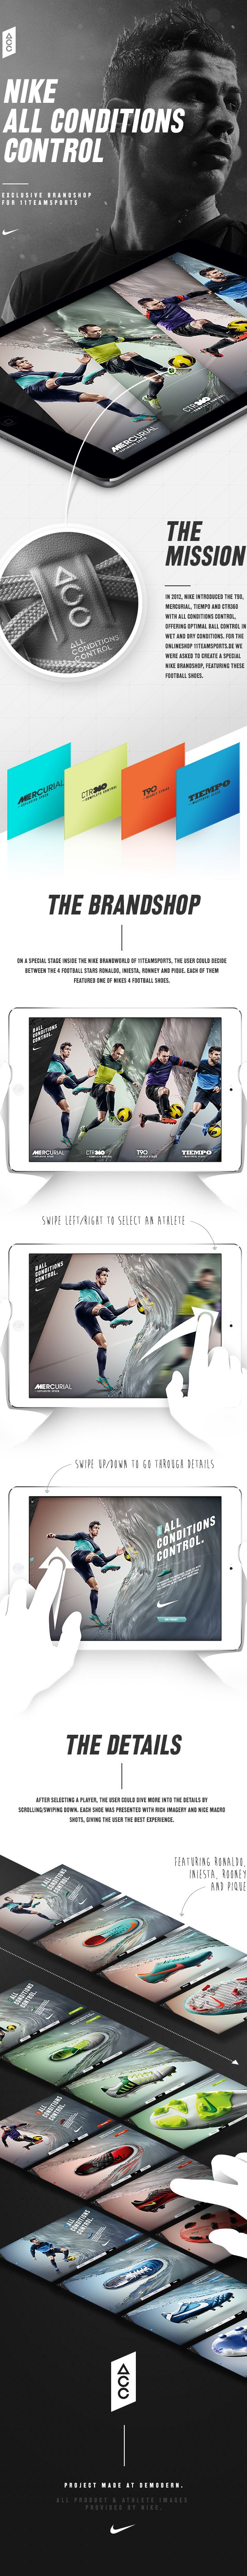 Nike Football – All Conditions Control Brandshop on Behance